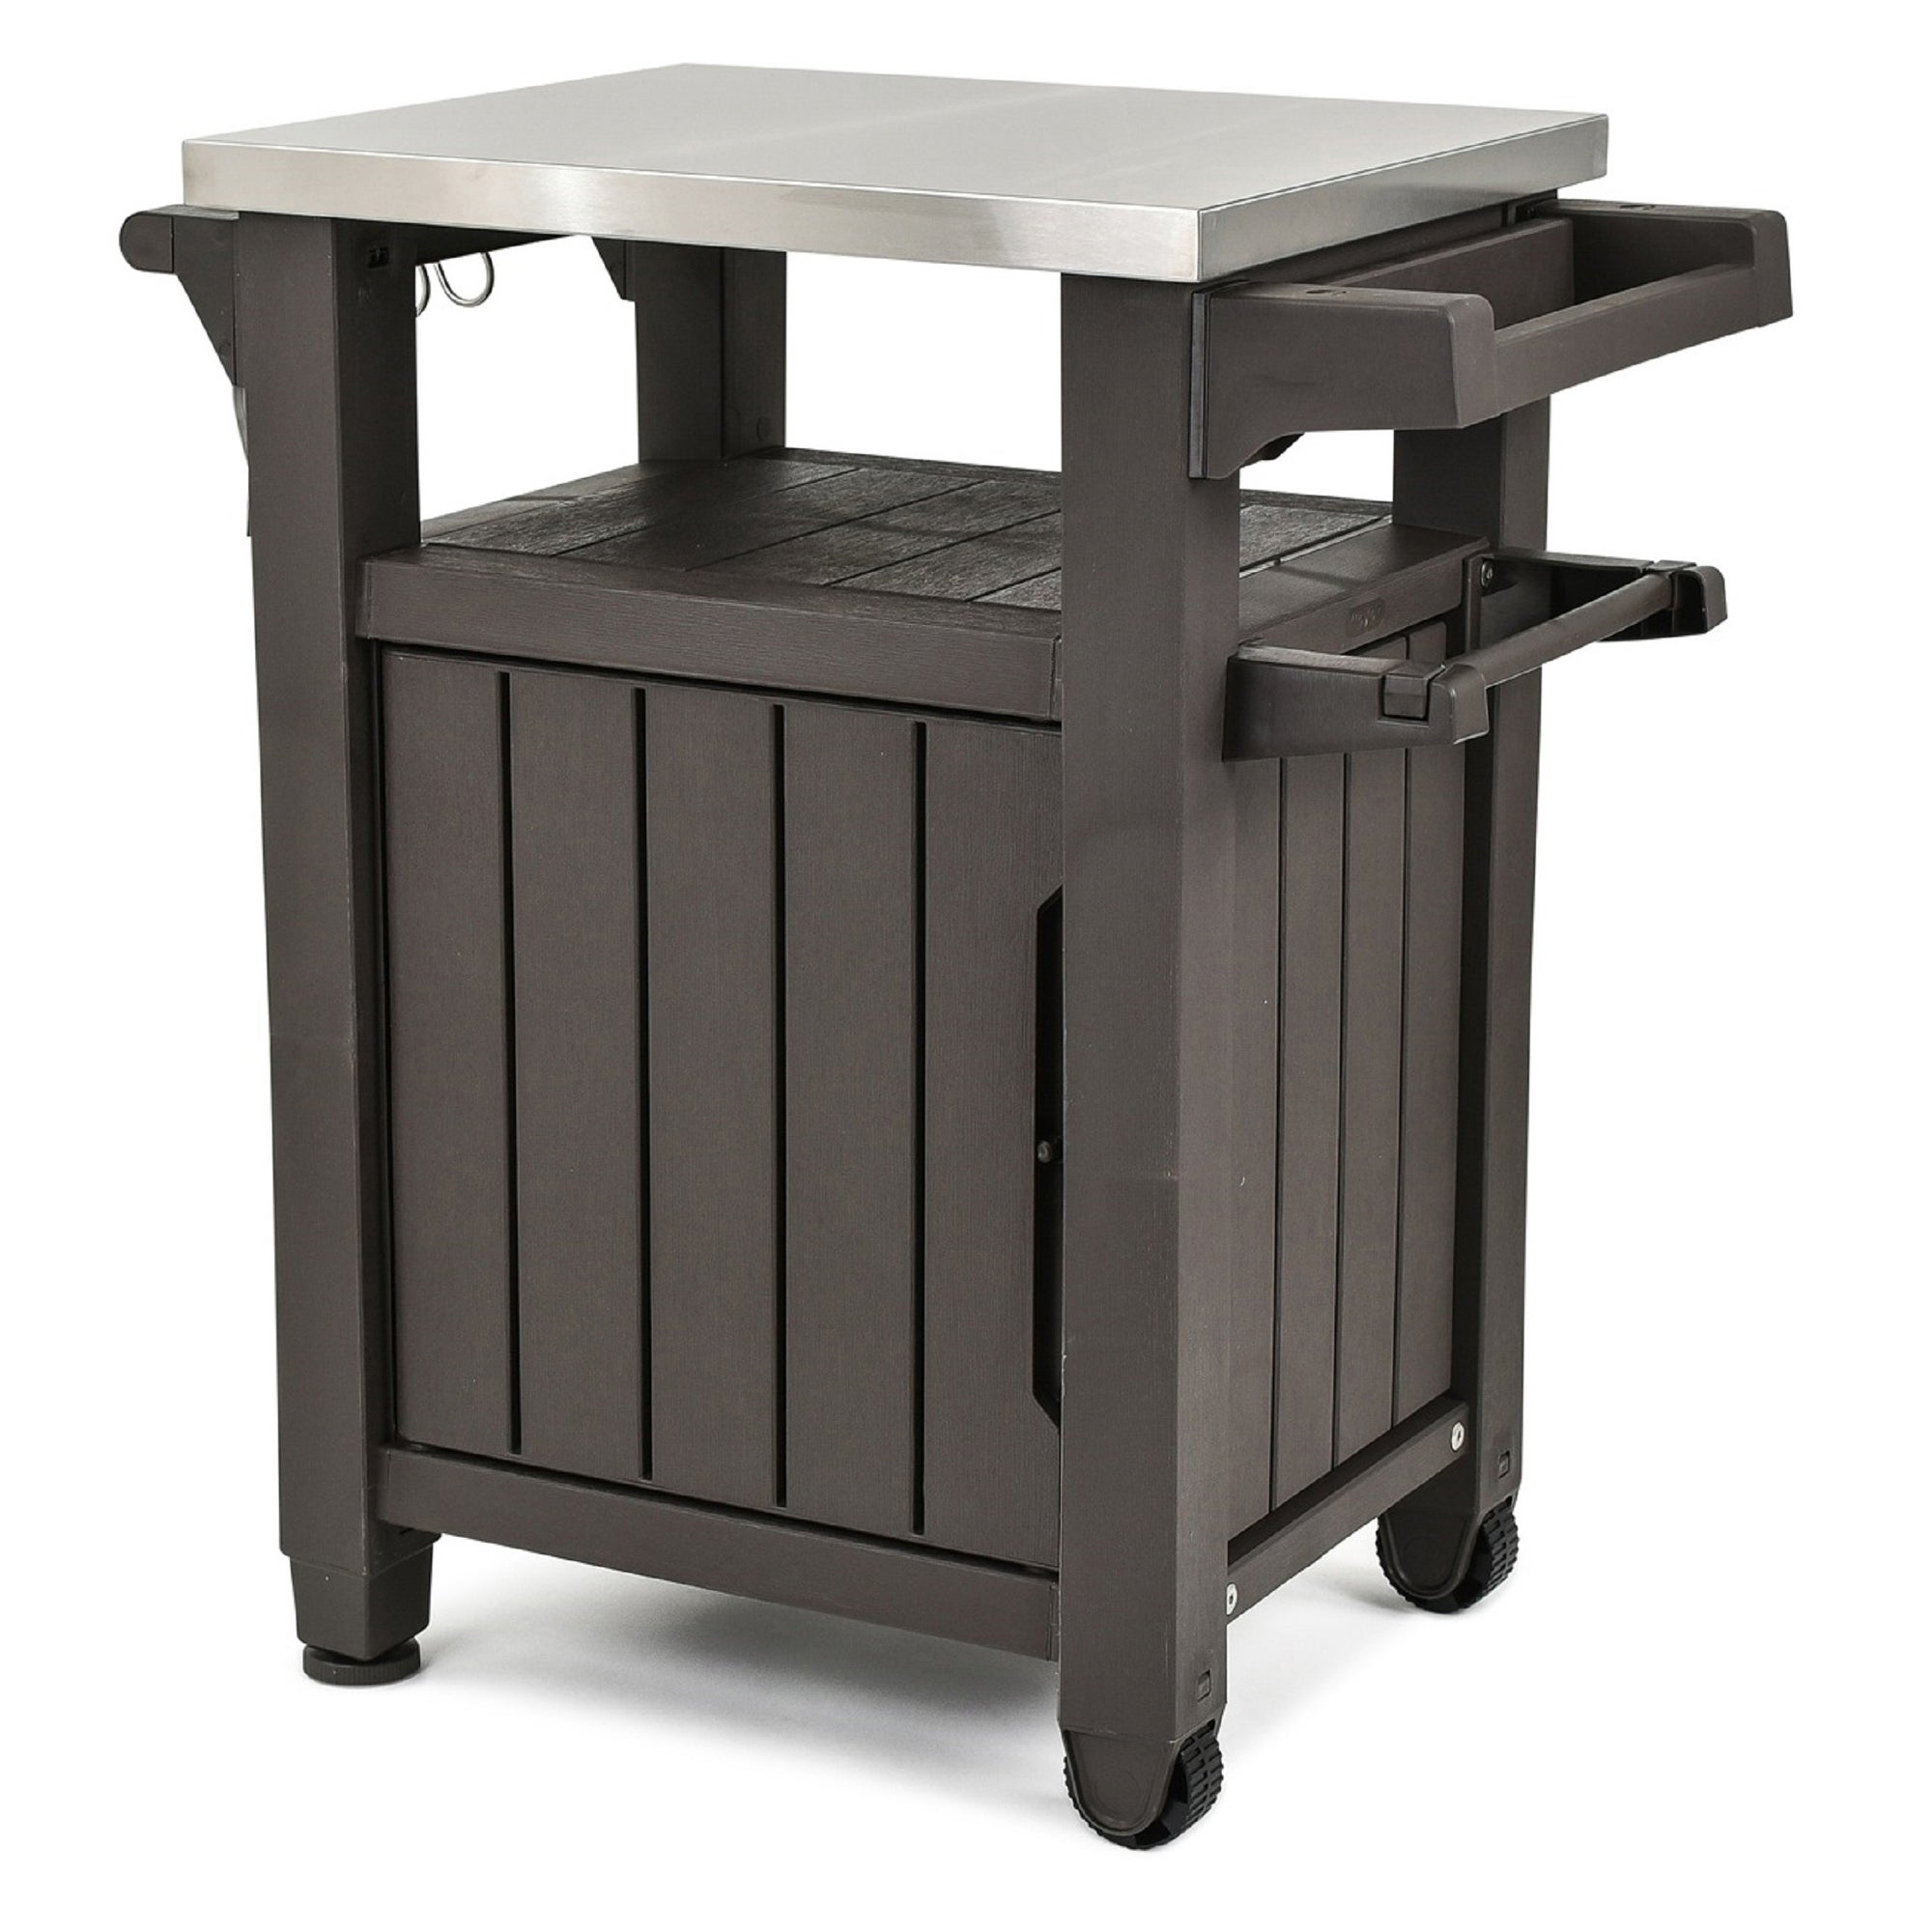 Shop Keter Unity Indoor Outdoor Serving Cart Prep Station With Storage    Free Shipping Today   Overstock.com   17925661